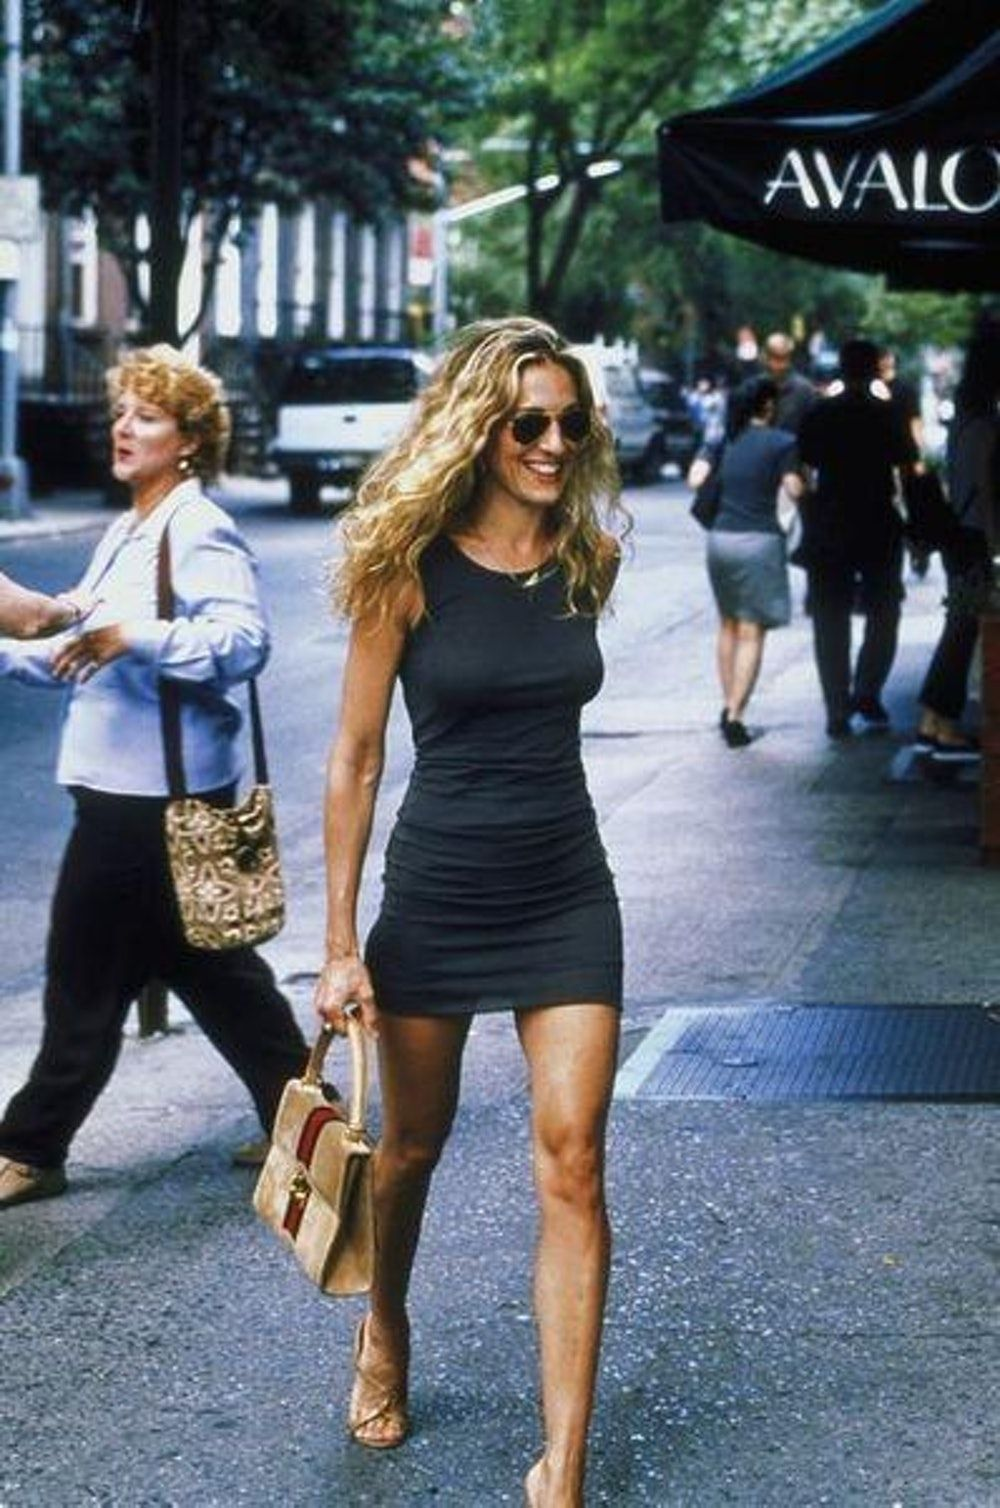 Channeling Carrie Bradshaw